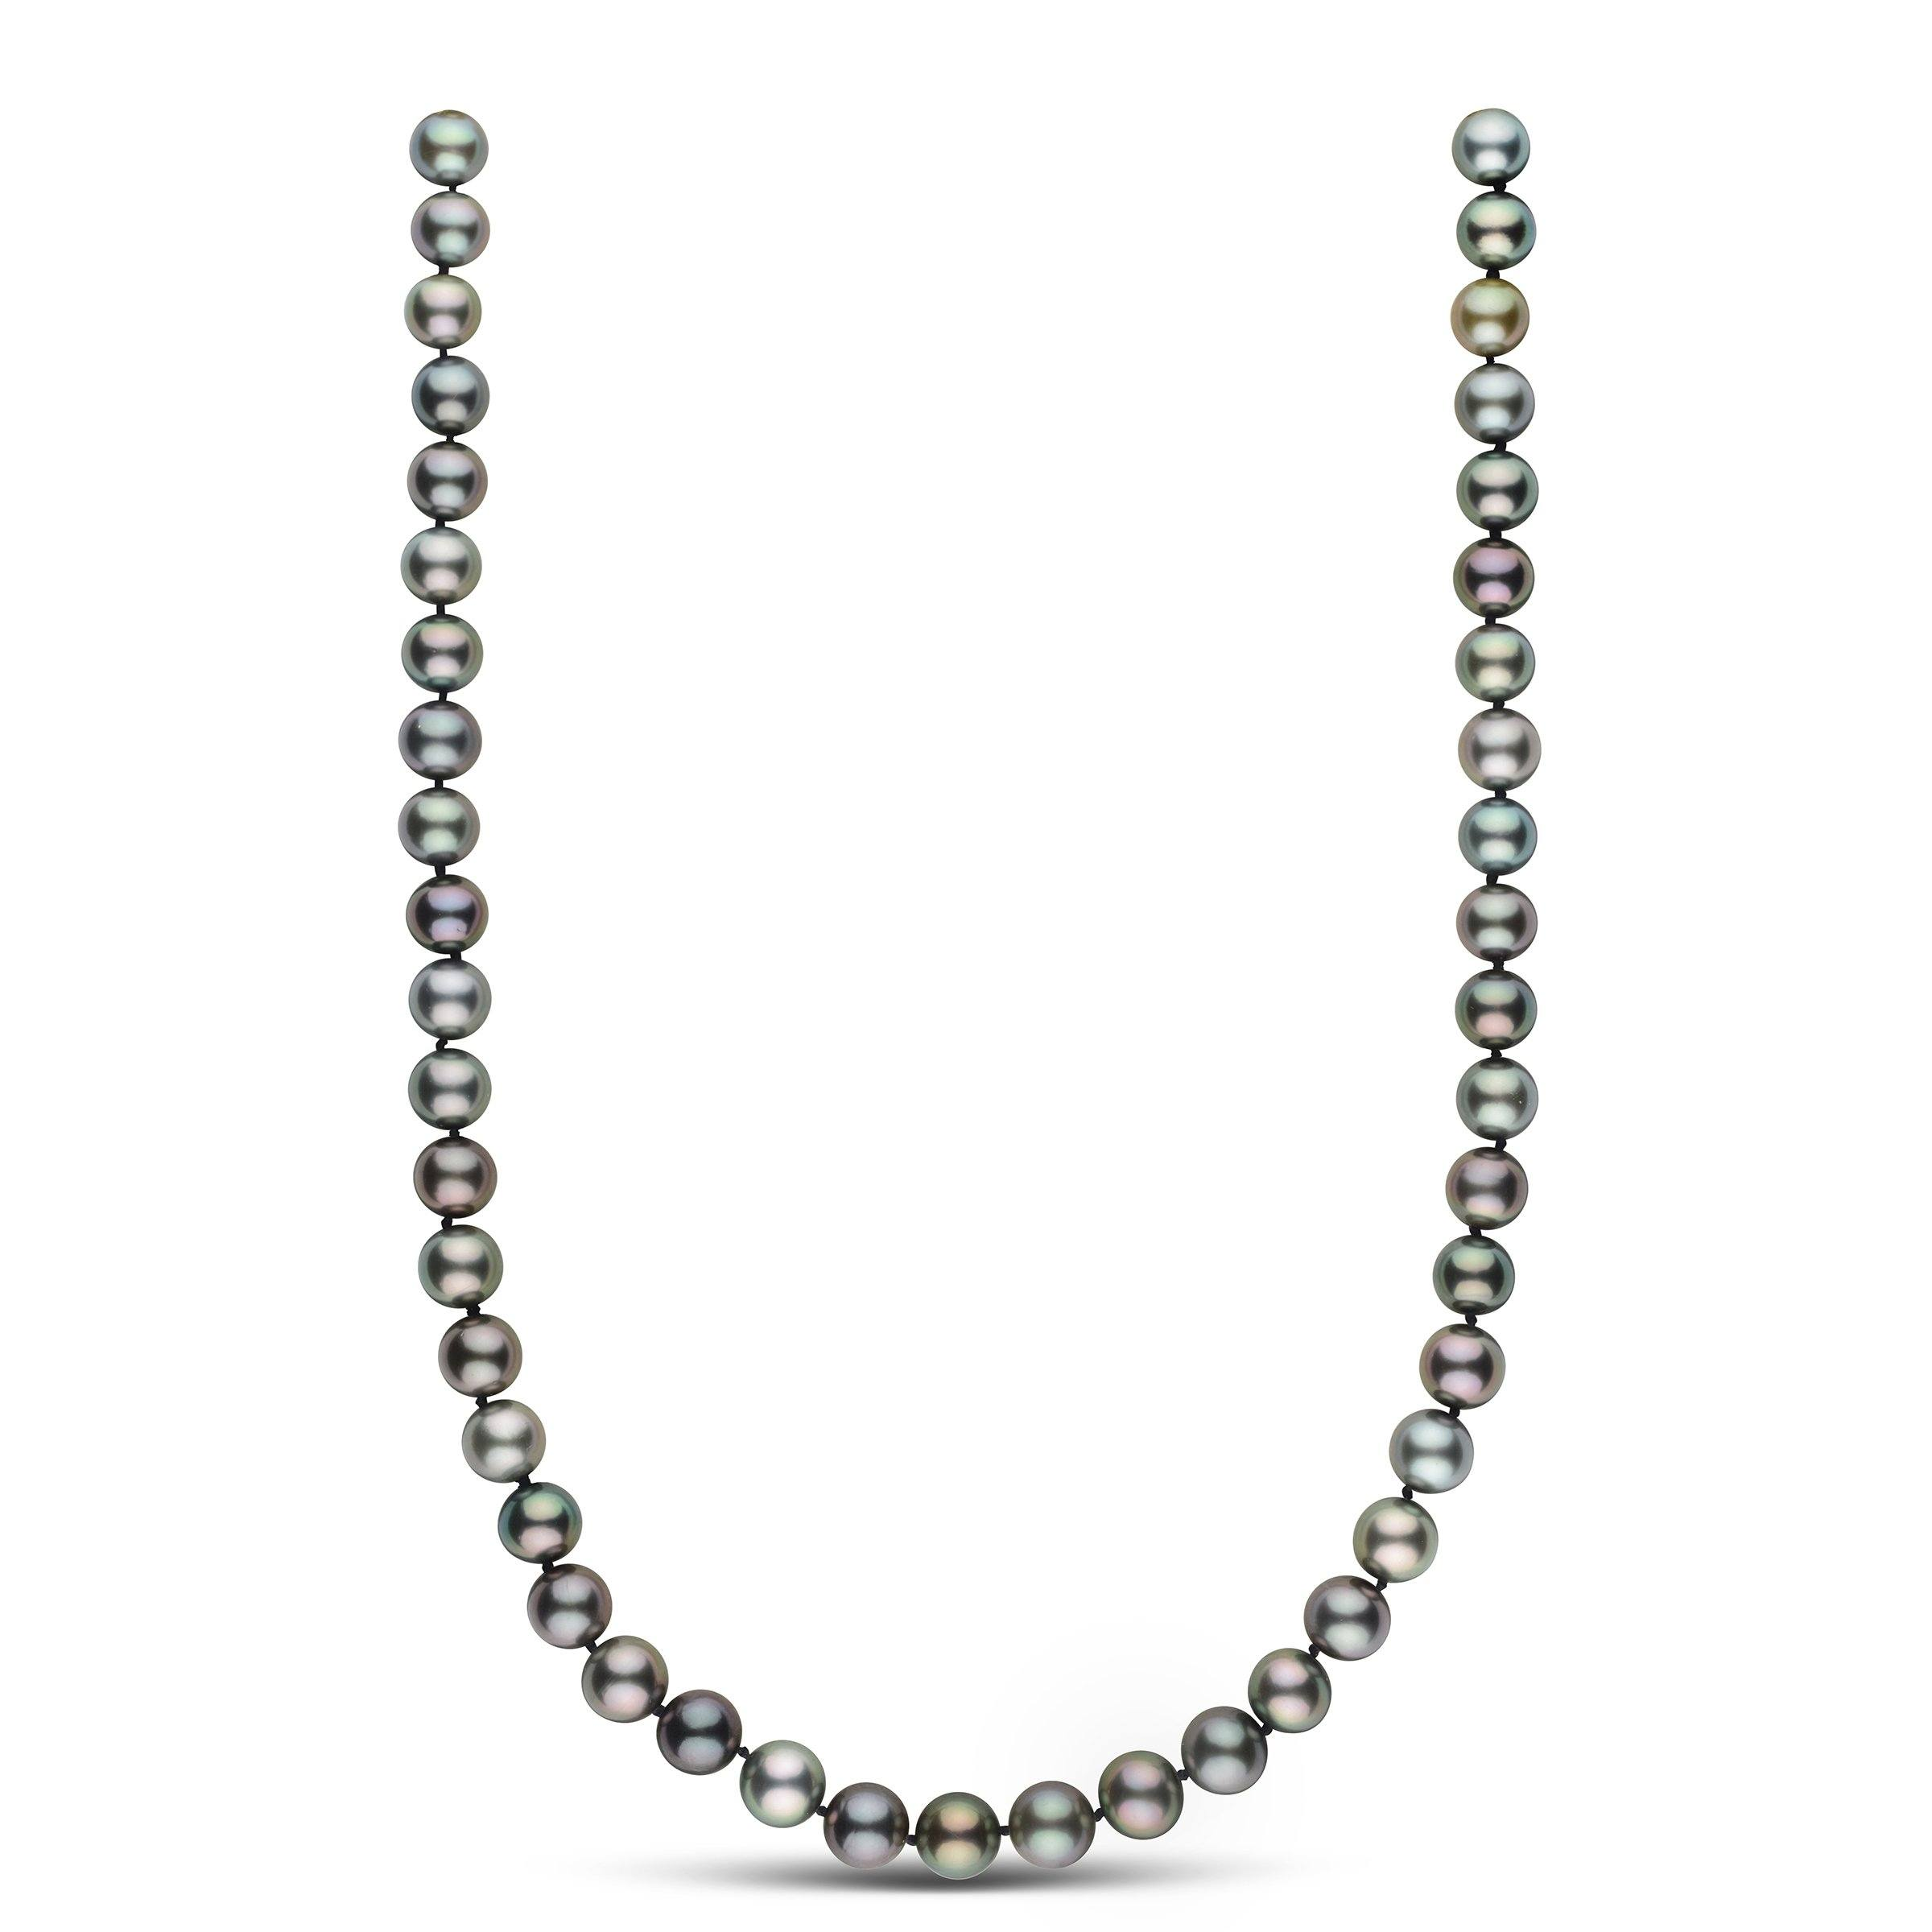 18 inch 9.0-9.8 mm AAA Round Multicolored Tahitian Pearl Necklace